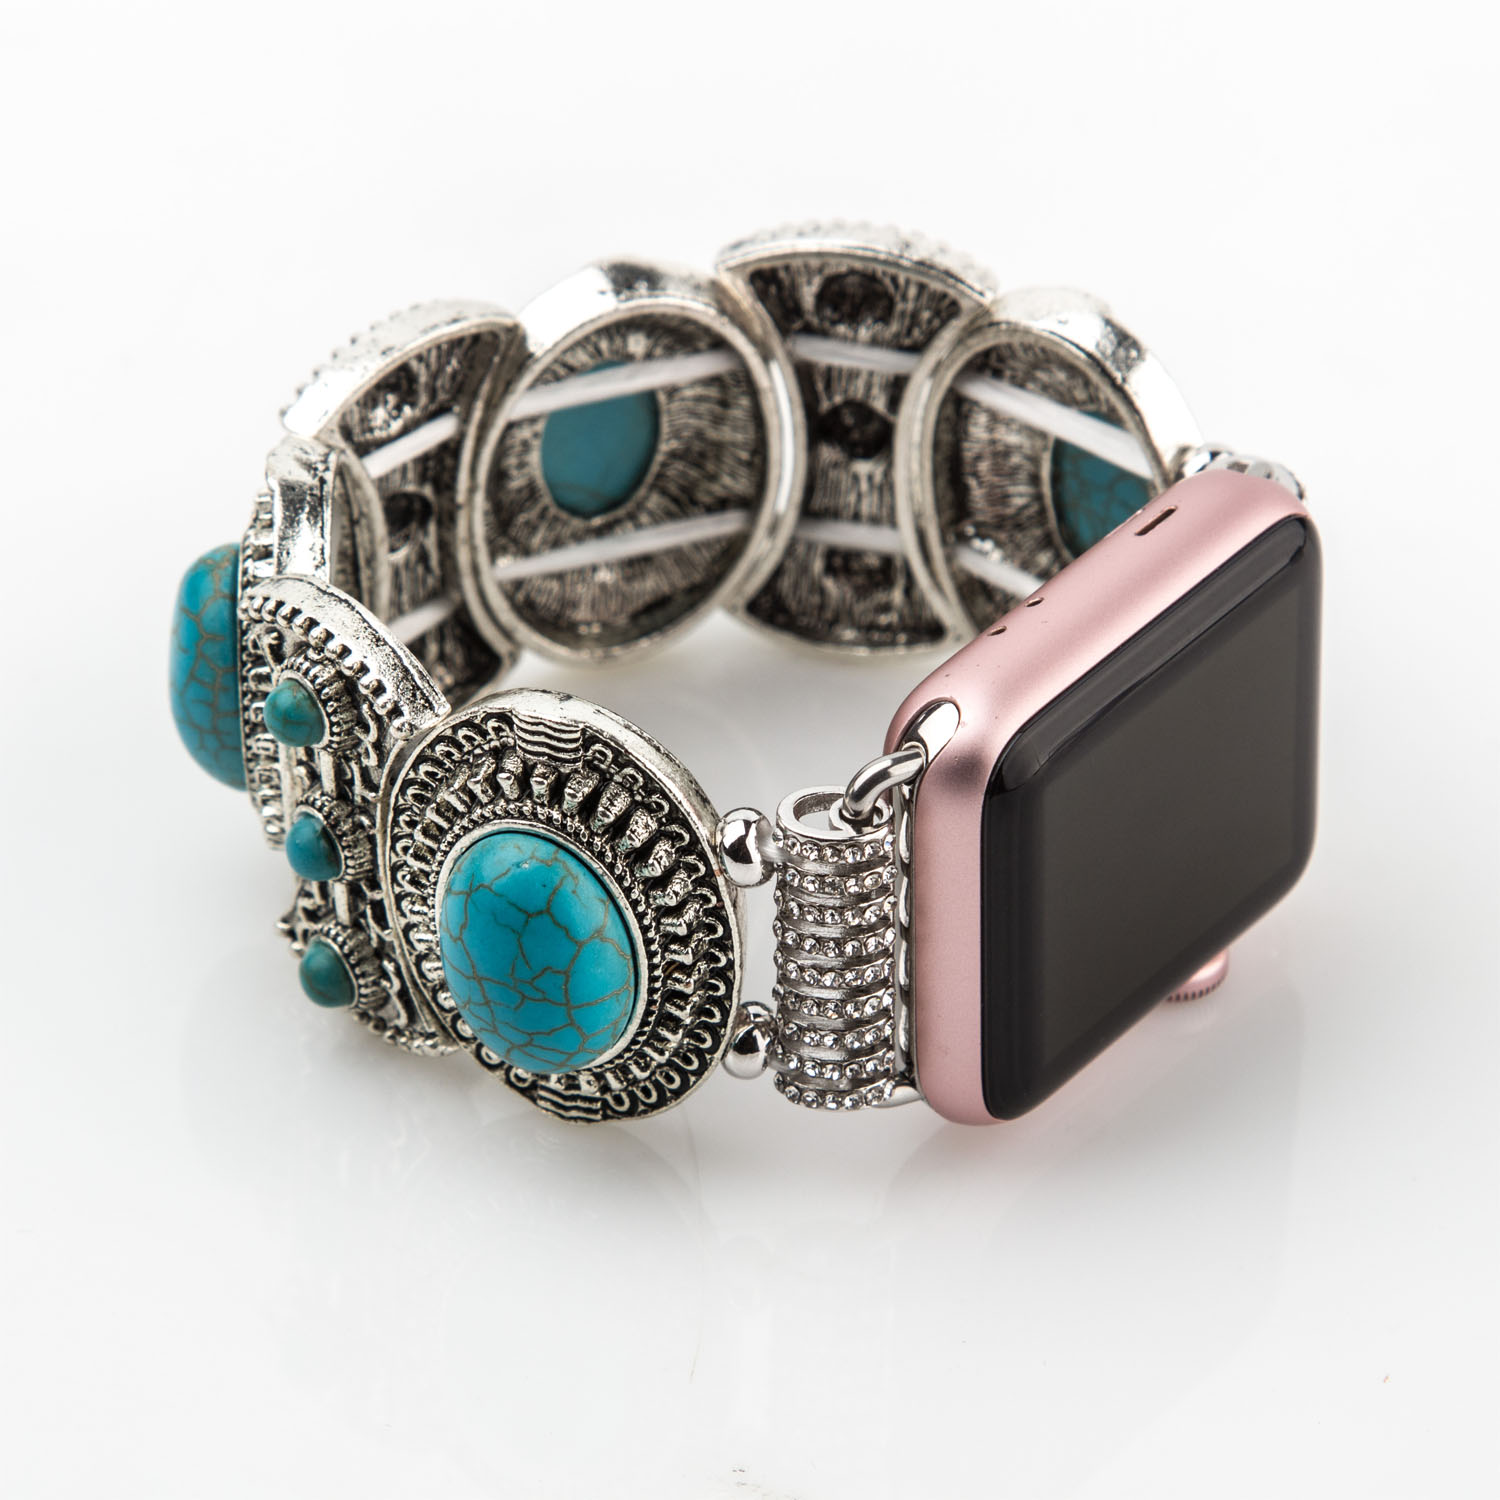 bracelet apple serie 3 retro turquoise stretch bracelet for apple series 3 6908